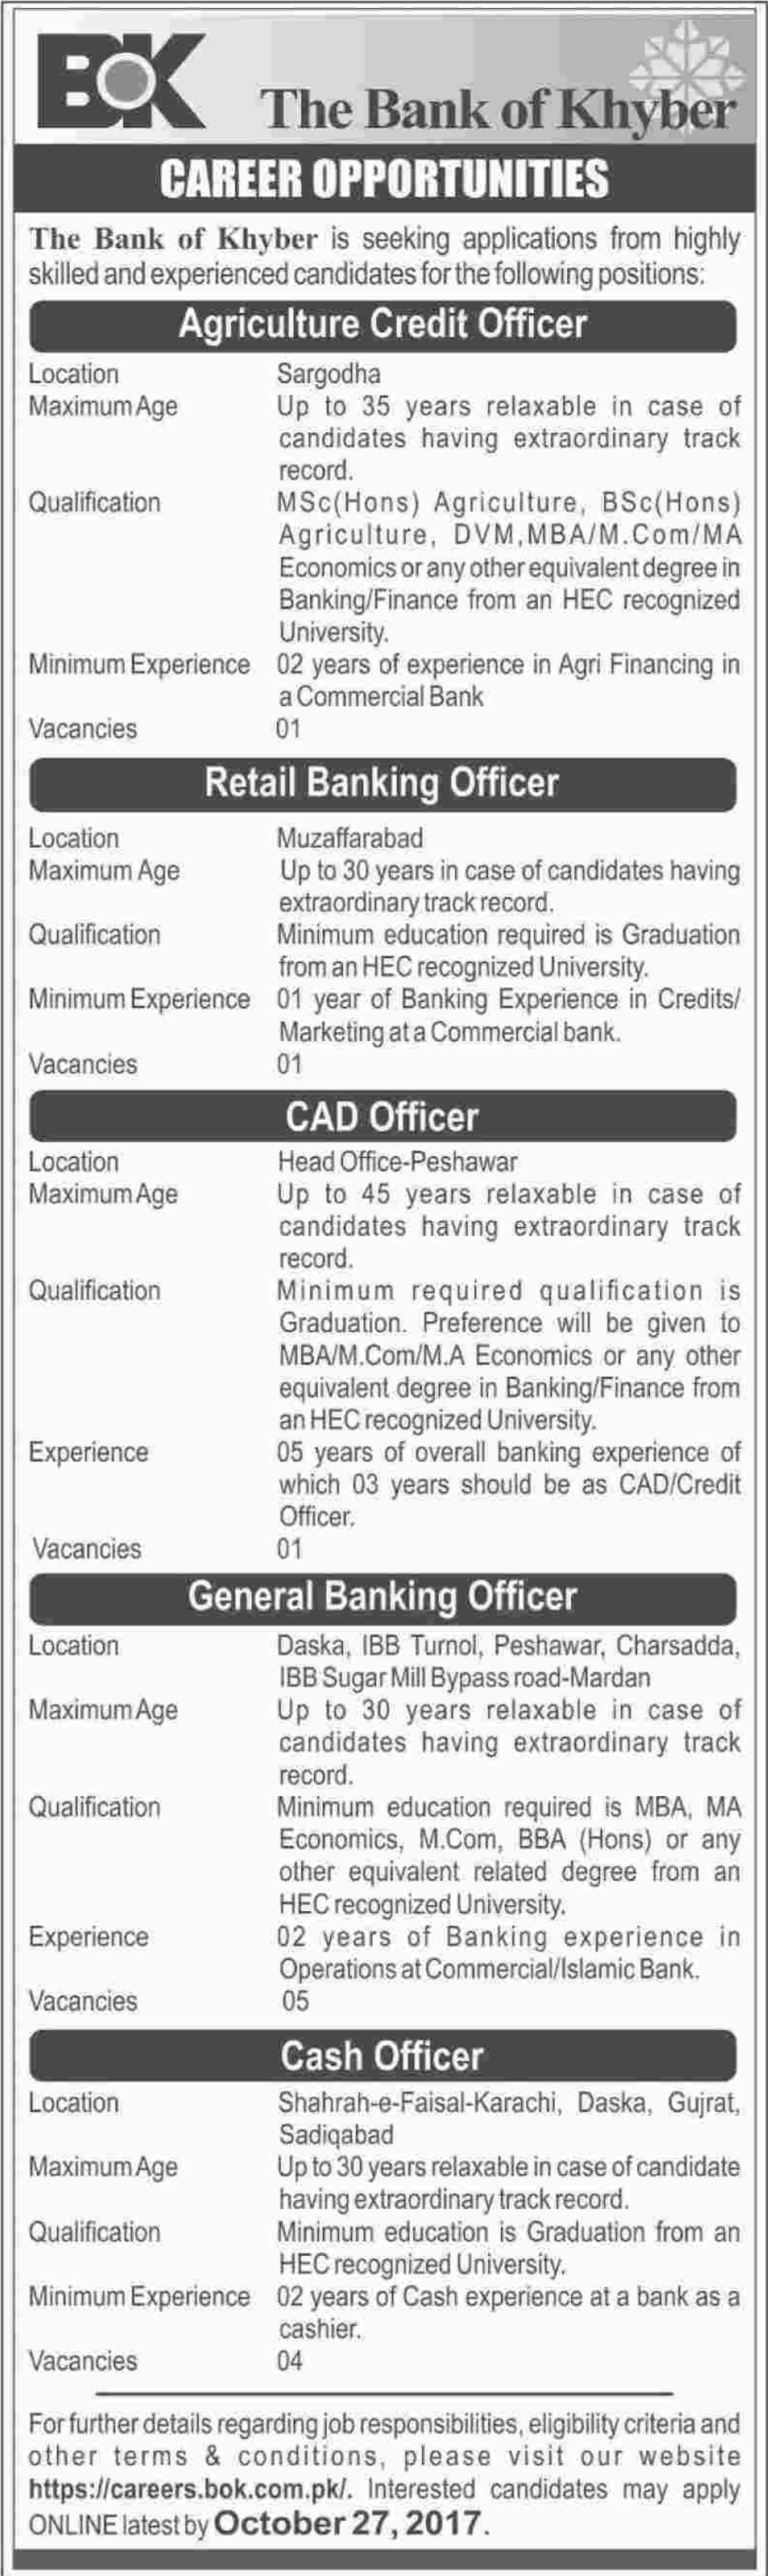 The Bank of Khyber Career Opportunity